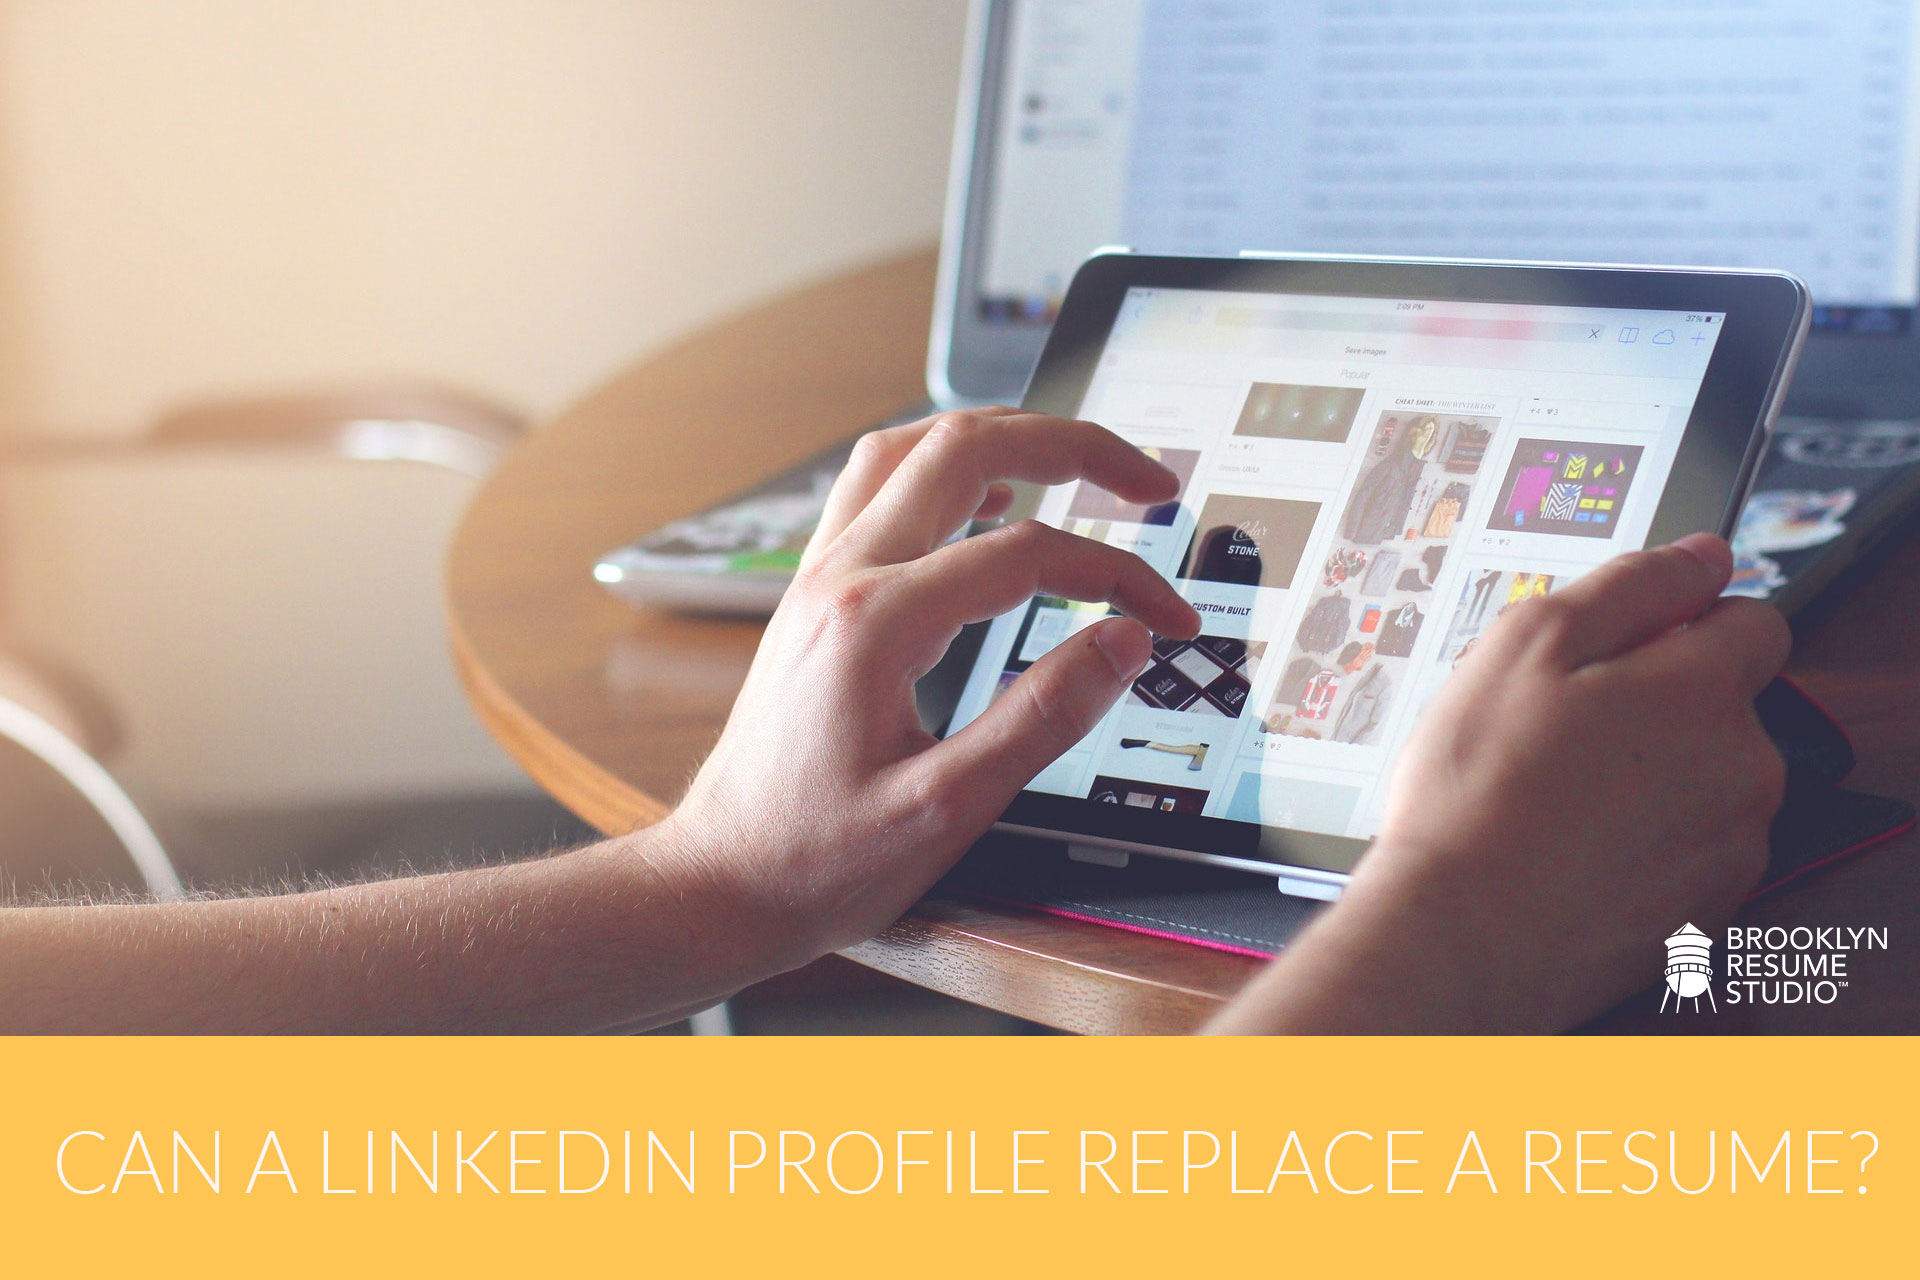 Can Your LinkedIn Profile Replace Your Resume?